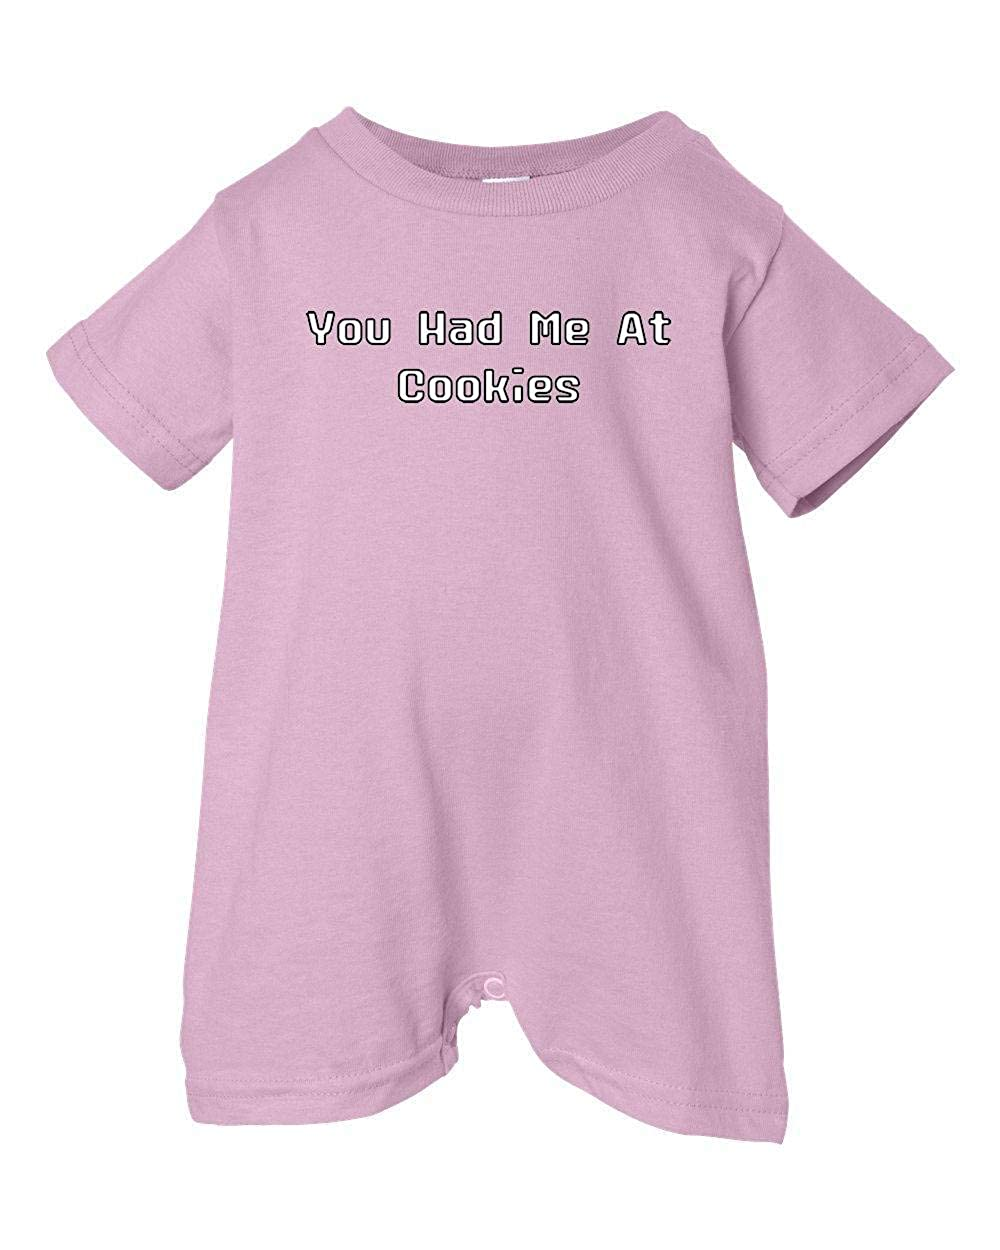 Pink, 18 Months Tasty Threads Unisex Baby You Had Me At Cookies T-Shirt Romper